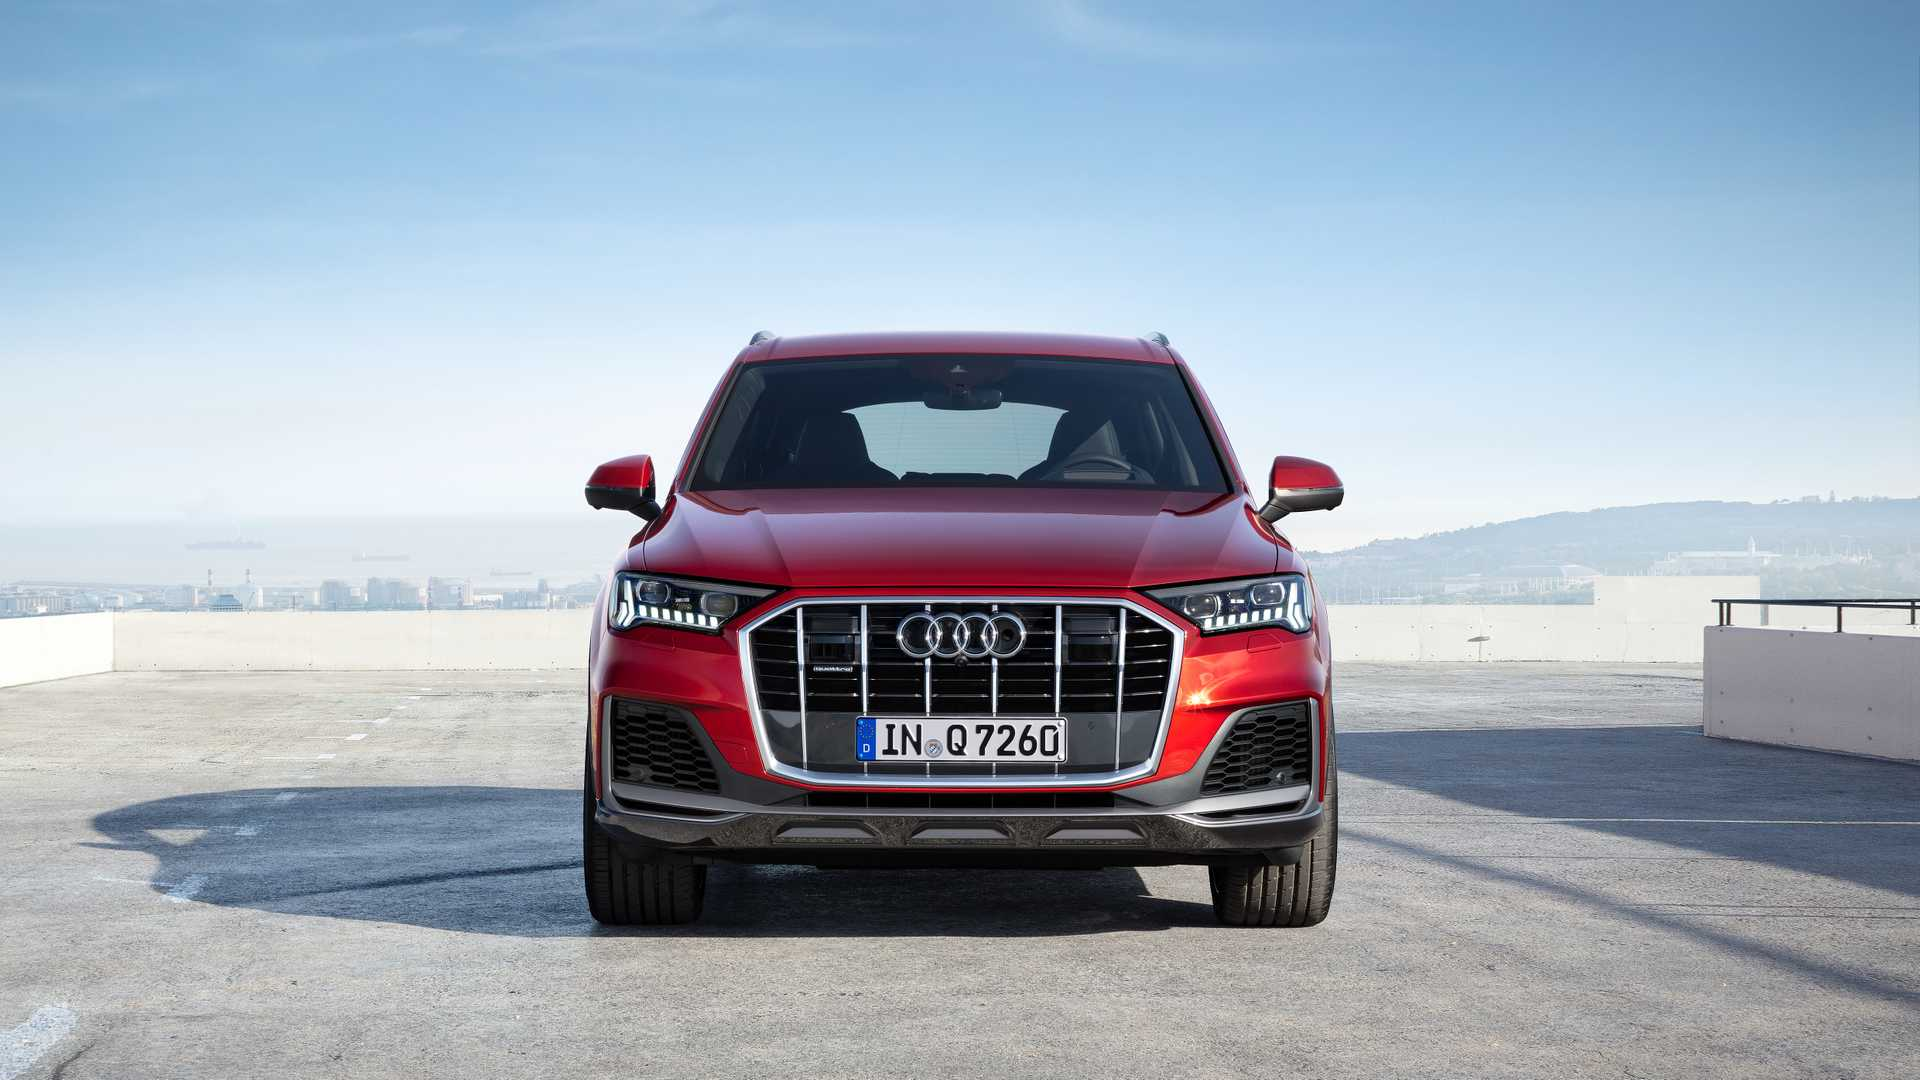 91 All New Xe Audi Q7 2020 Research New by Xe Audi Q7 2020